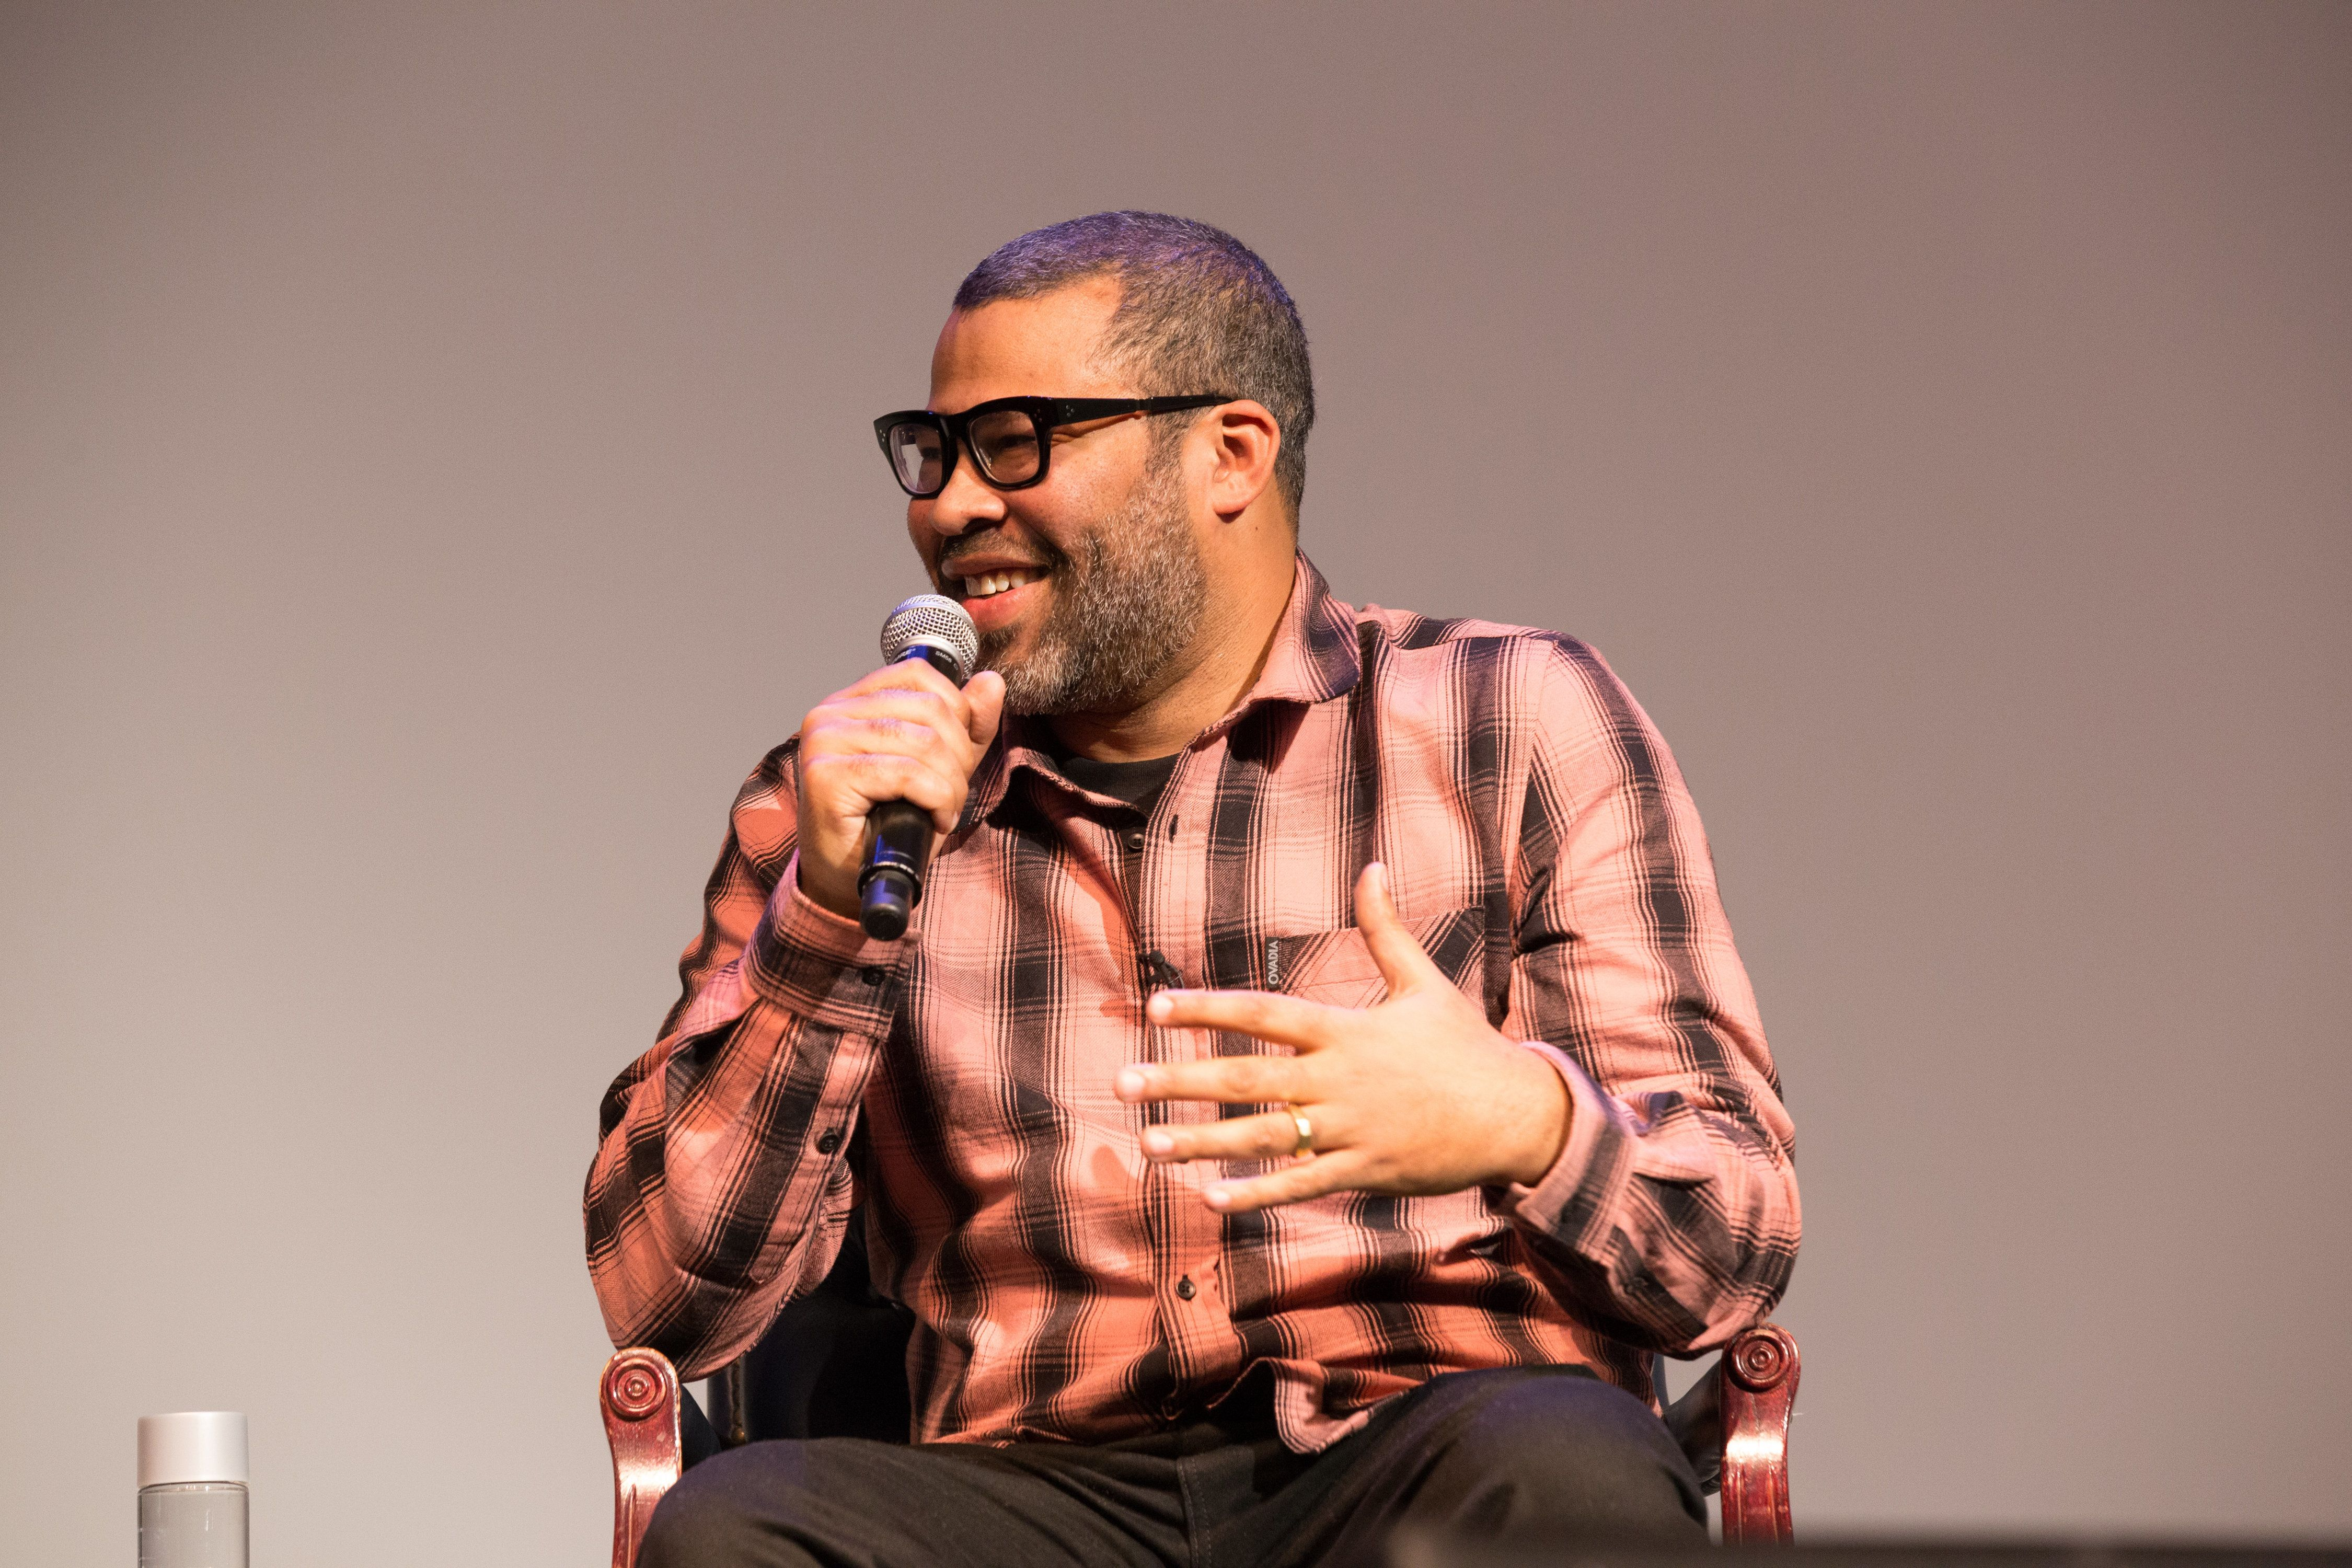 Jordan Peele Promotes 'Us' With Sneaky Nods To Classic Horror